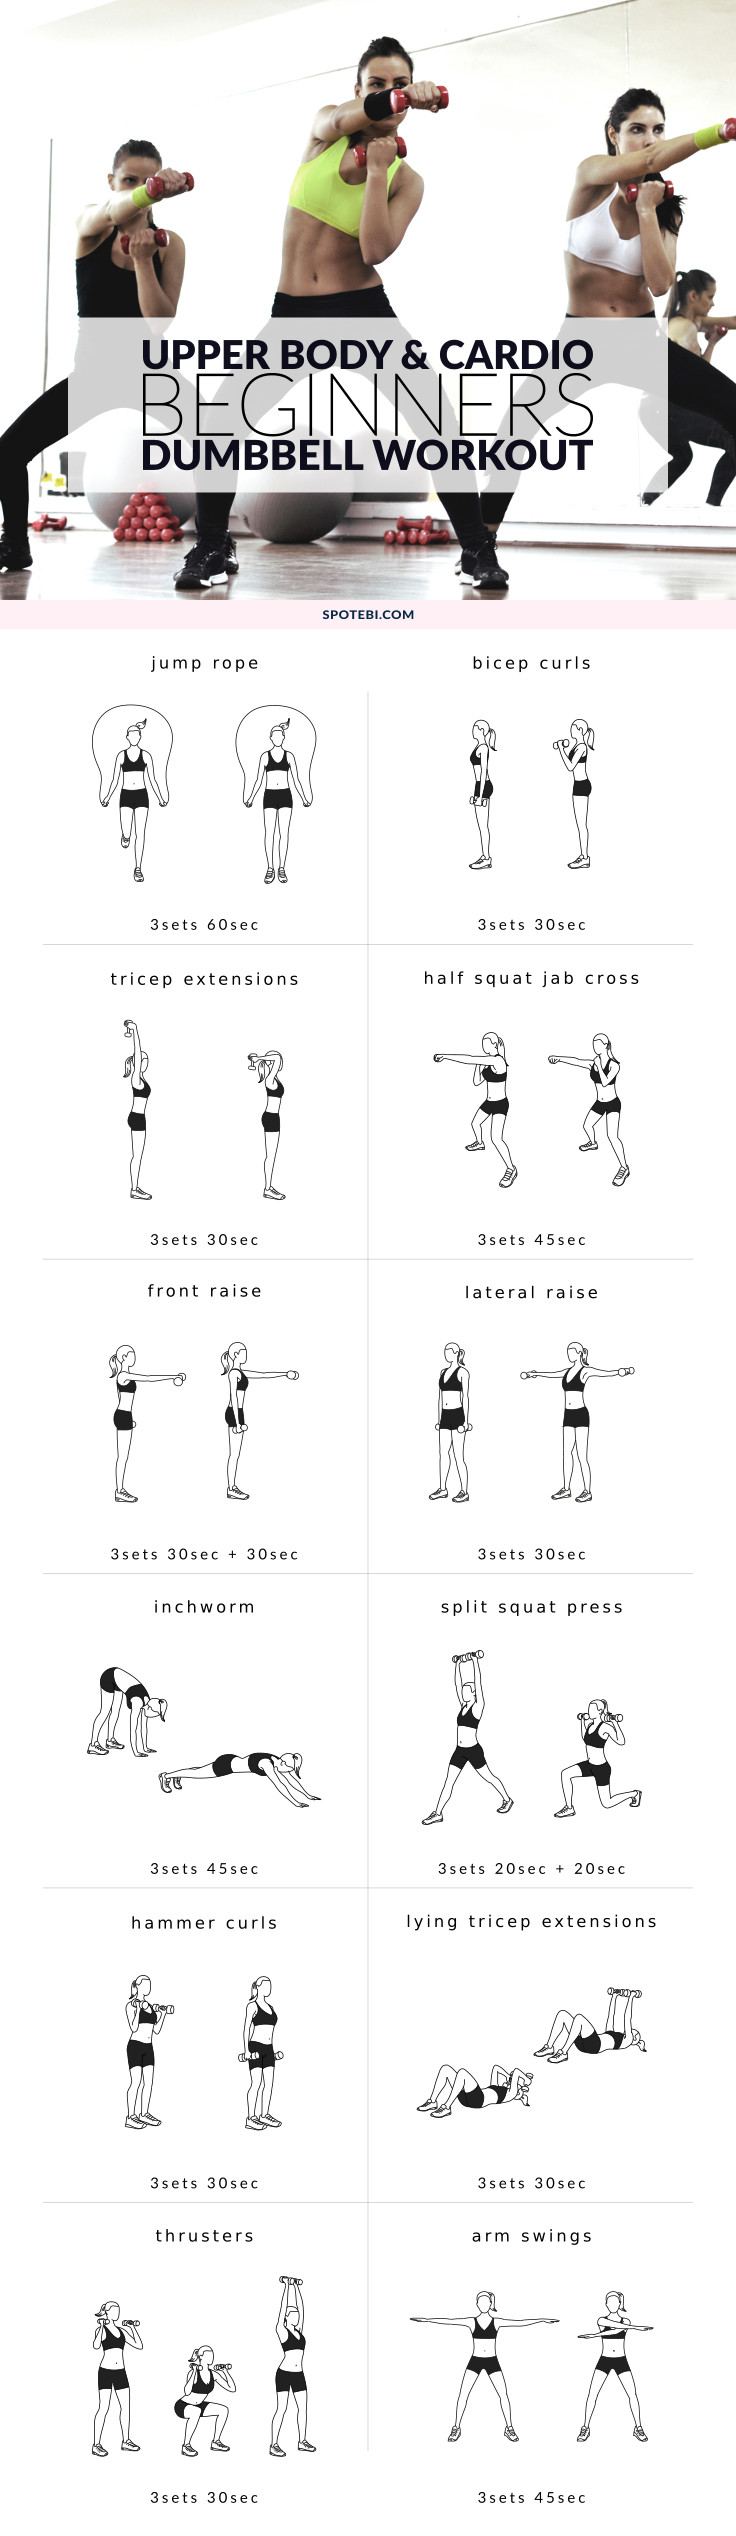 Slim down your arms and sculpt your shoulders with this upper body beginners workout for women. A mix of cardio and strength training moves to trim body fat and strengthen the muscles. https://www.spotebi.com/workout-routines/upper-body-cardio-beginners-workout/